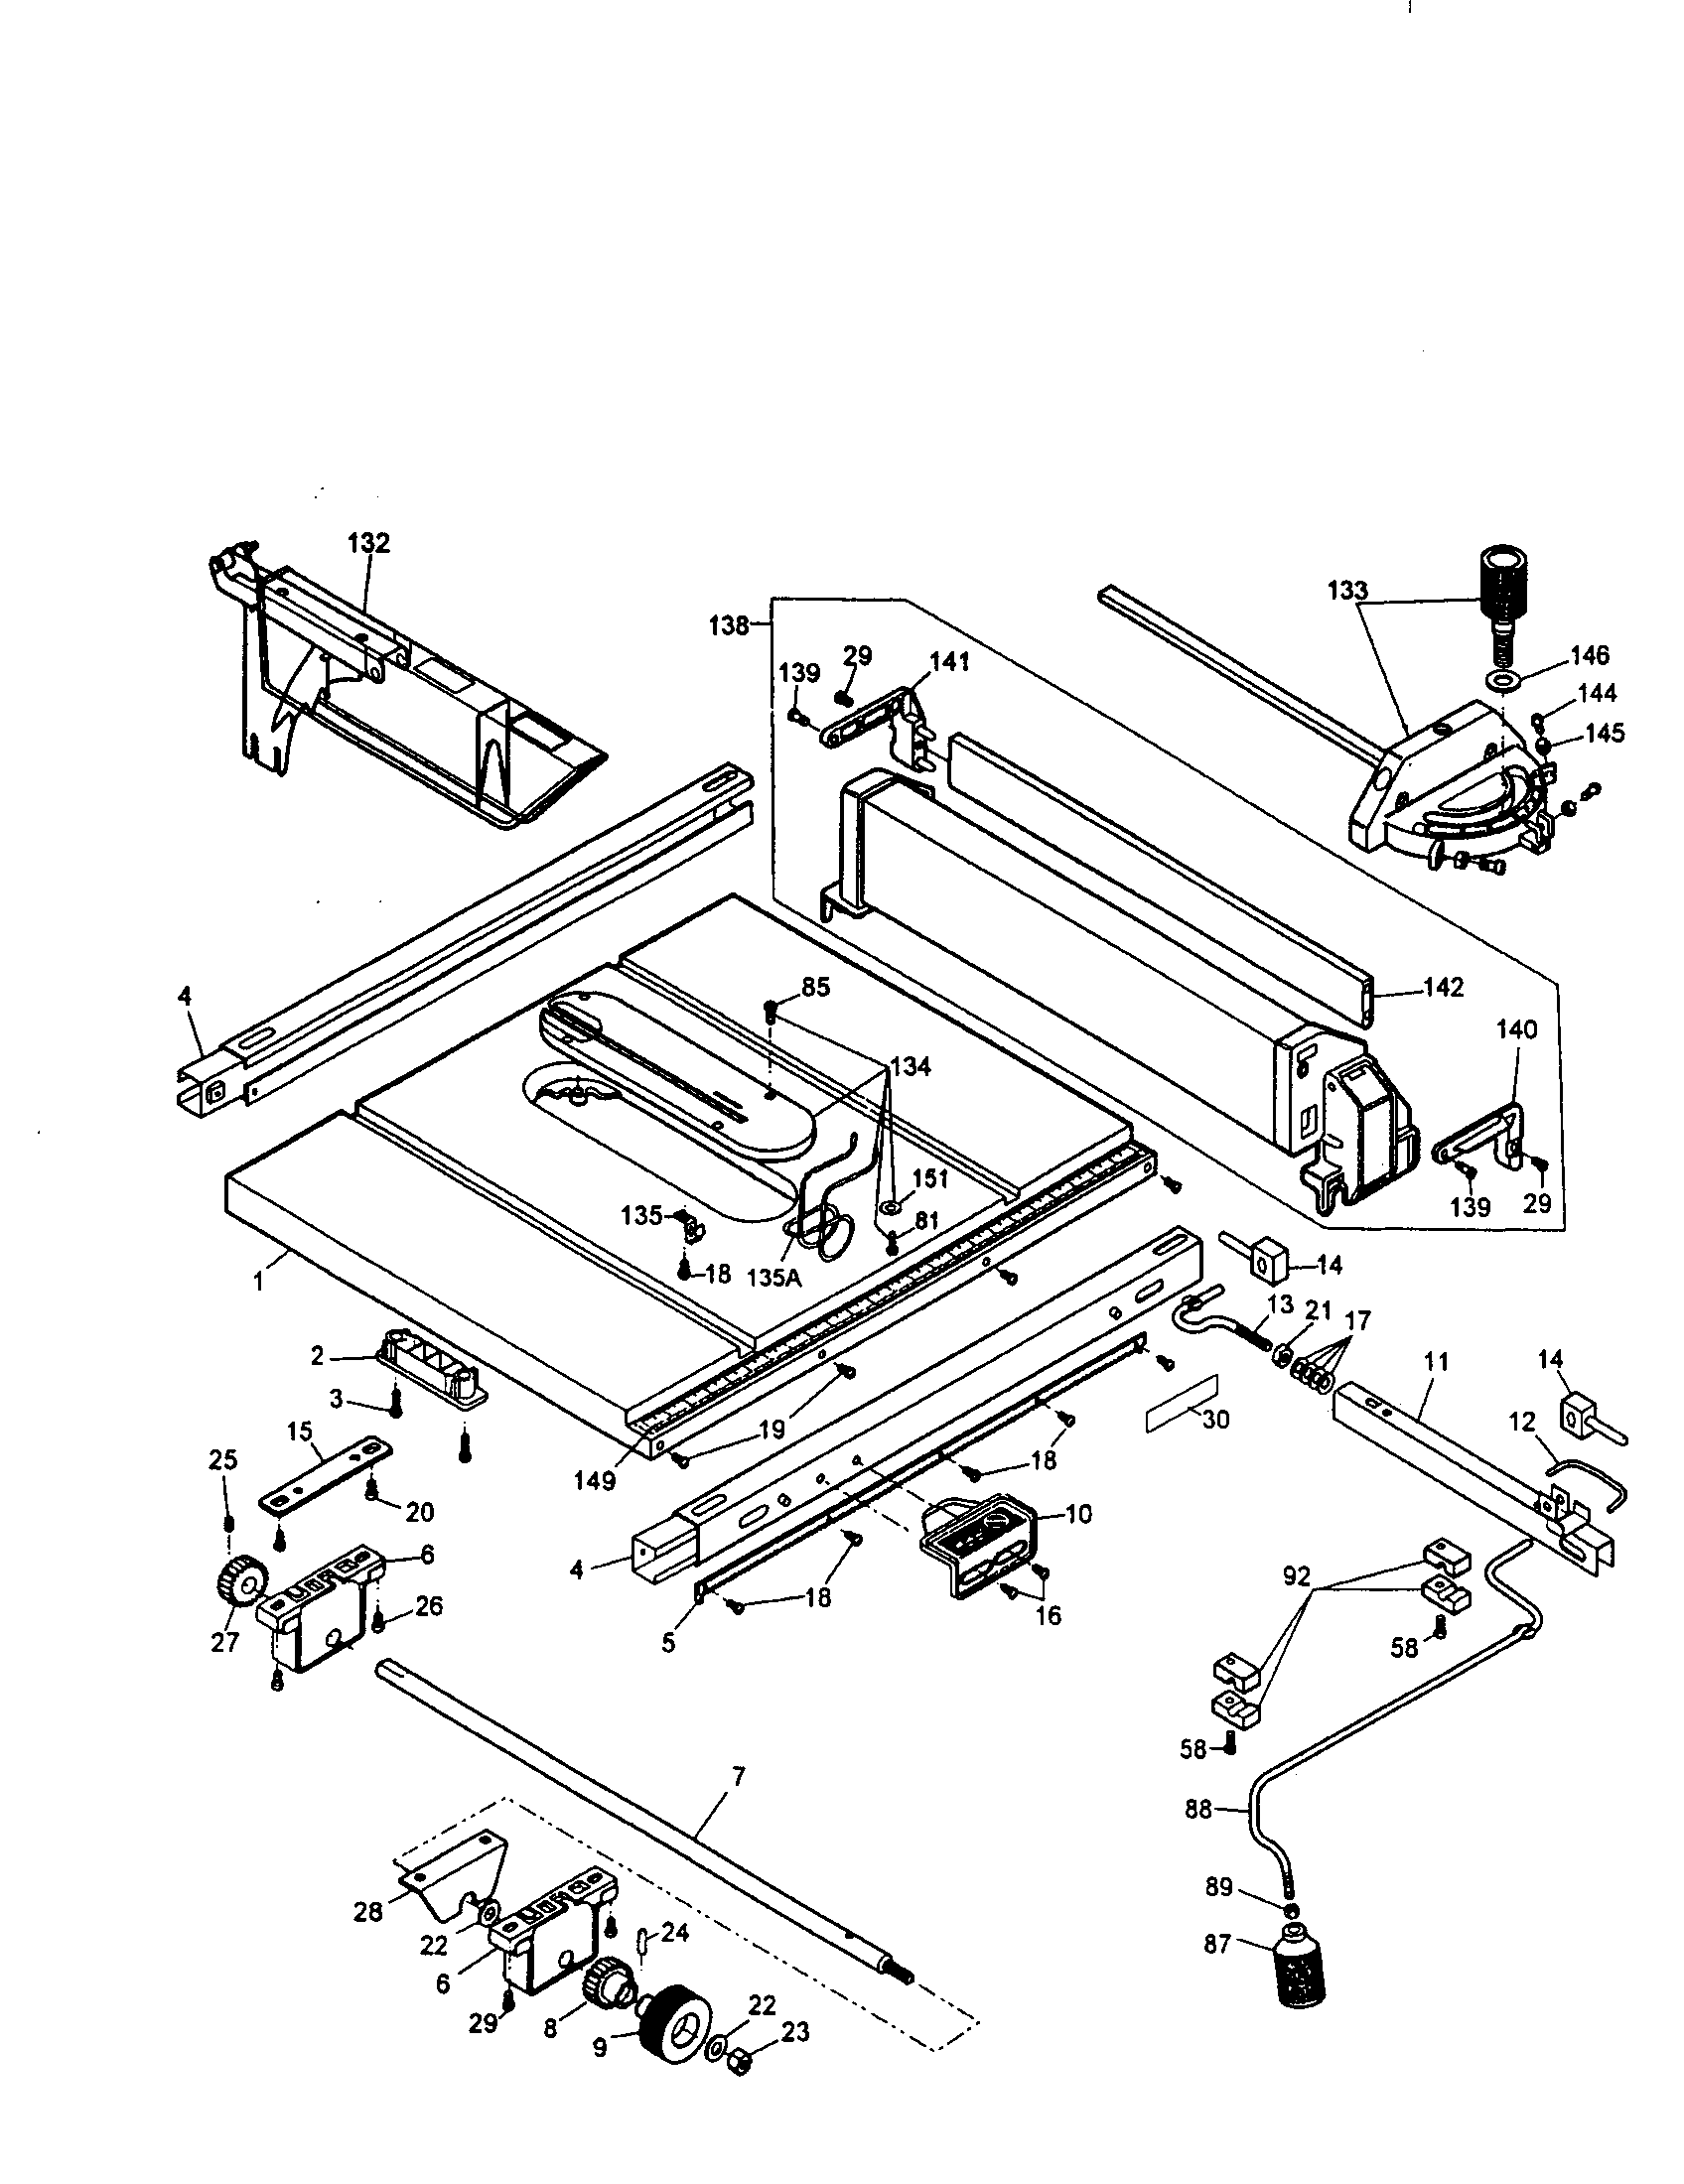 hight resolution of looking for dewalt model dw744 type 1 table saw repair u0026 replacementdw744 table saw wiring